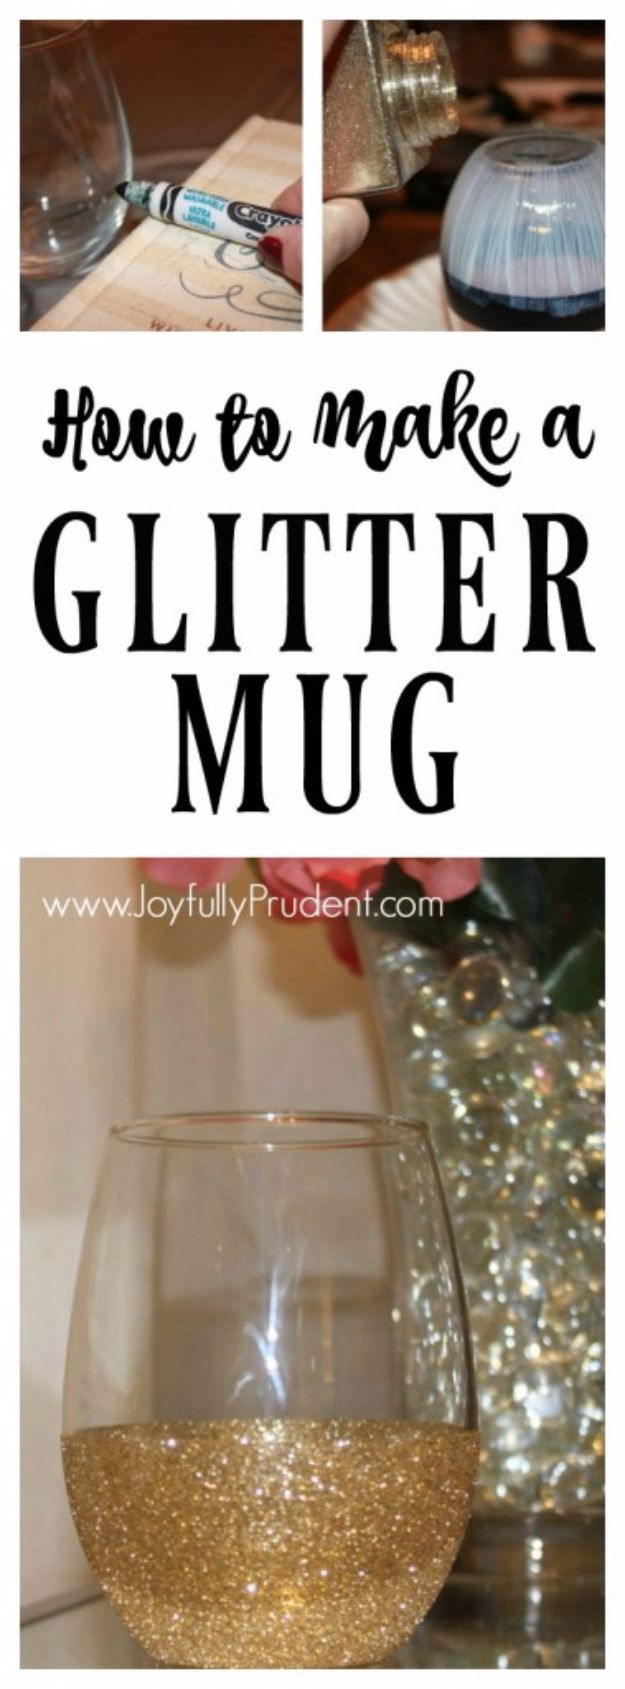 DIY Ideas WIth Glitter - Glitter Dipped Mug - Easy Crafts and Projects for Decoration, Gifts, and Bedroom Decor - How To Make Ombre, Mod Podge and Glitter Mason Jar Gift Ideas For Teens - Easy Clothes and Makeup Crafts For Teenagers http://diyprojectsforteens.com/glitter-crafts-ideas